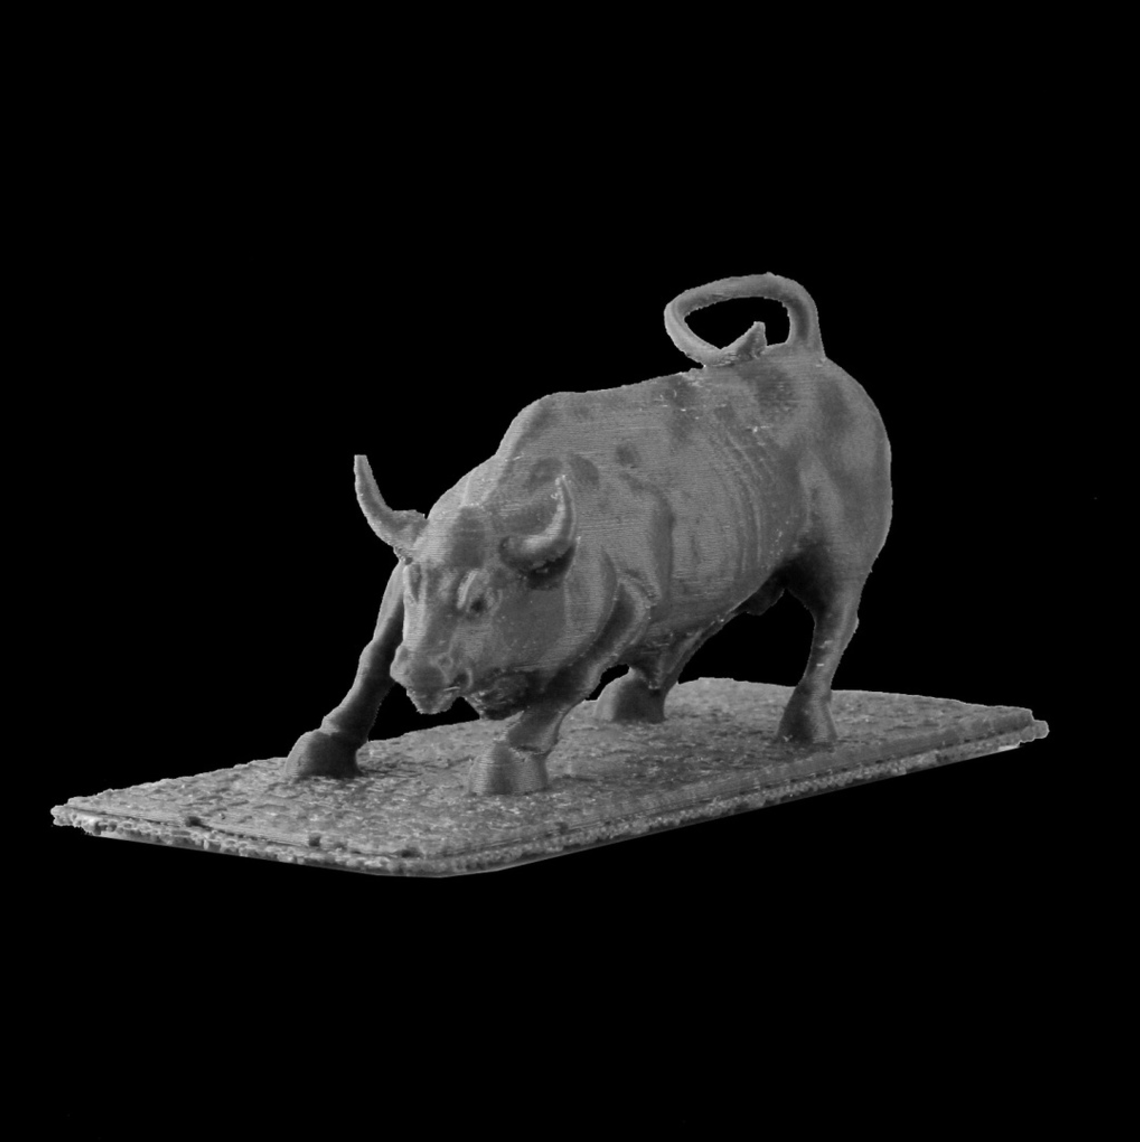 Capture d'écran 2017-08-01 à 12.41.34.png Download free STL file Wall Street Bull, New York • 3D printer model, Cool3DModel